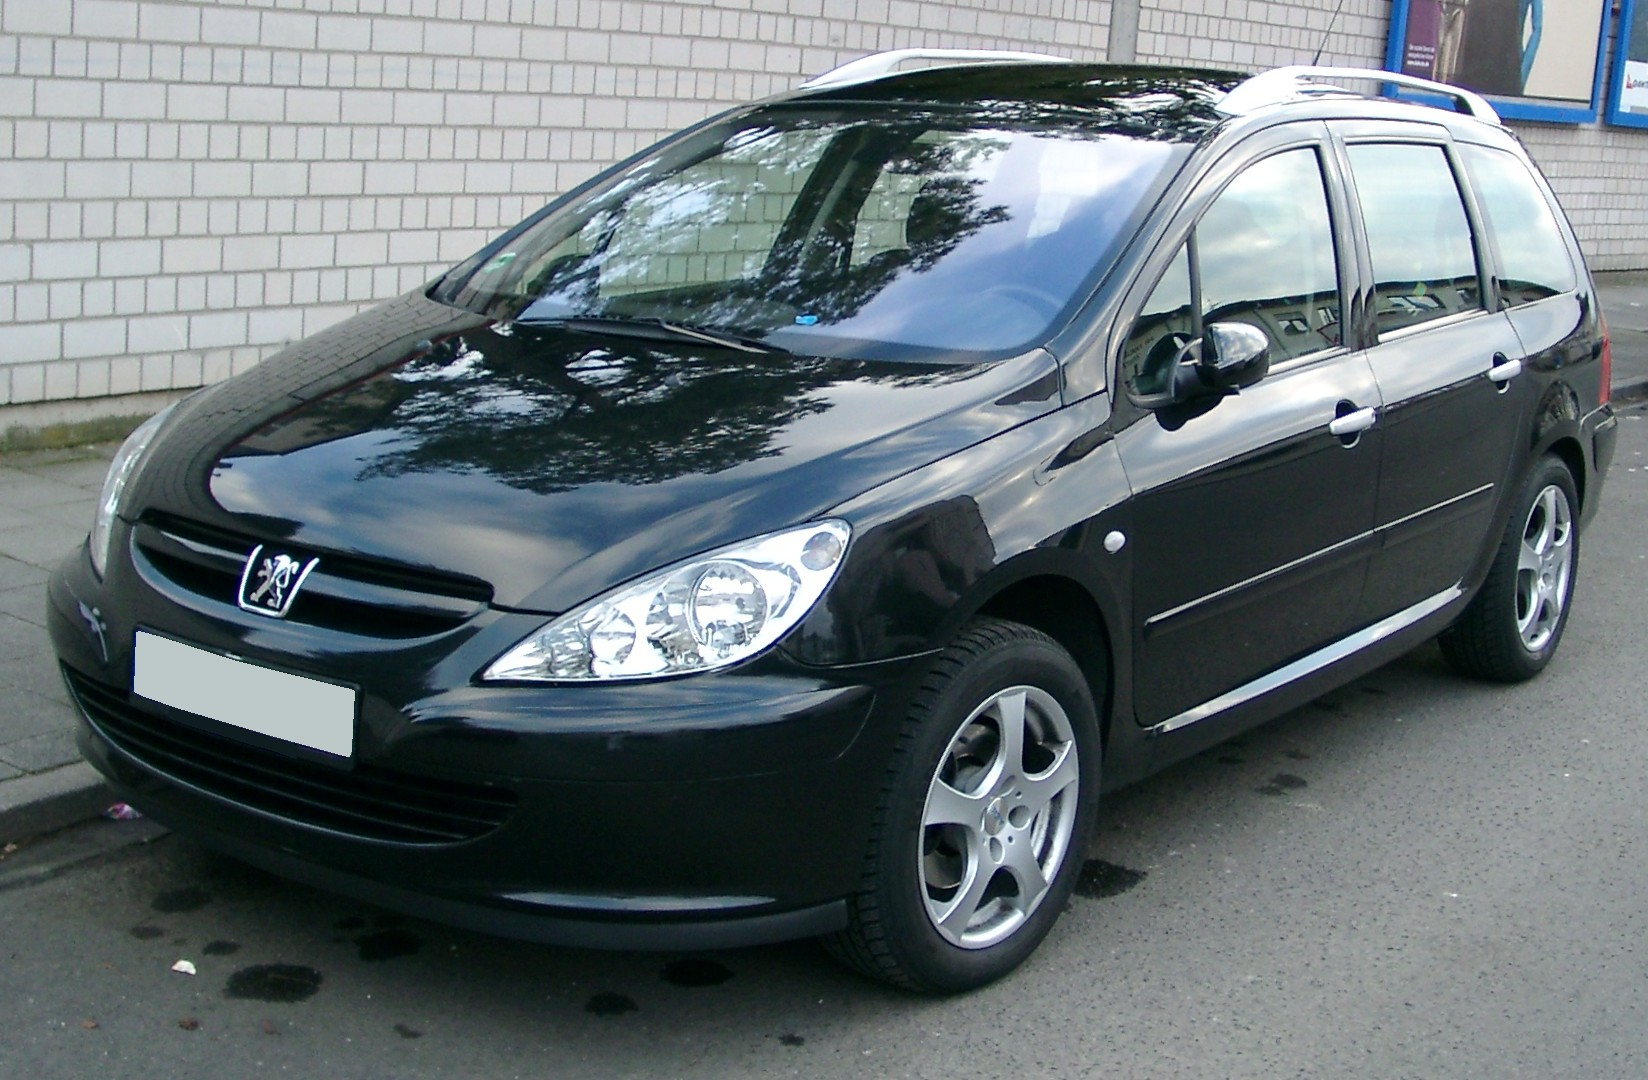 peugeot 307 station wagon 2014 #8